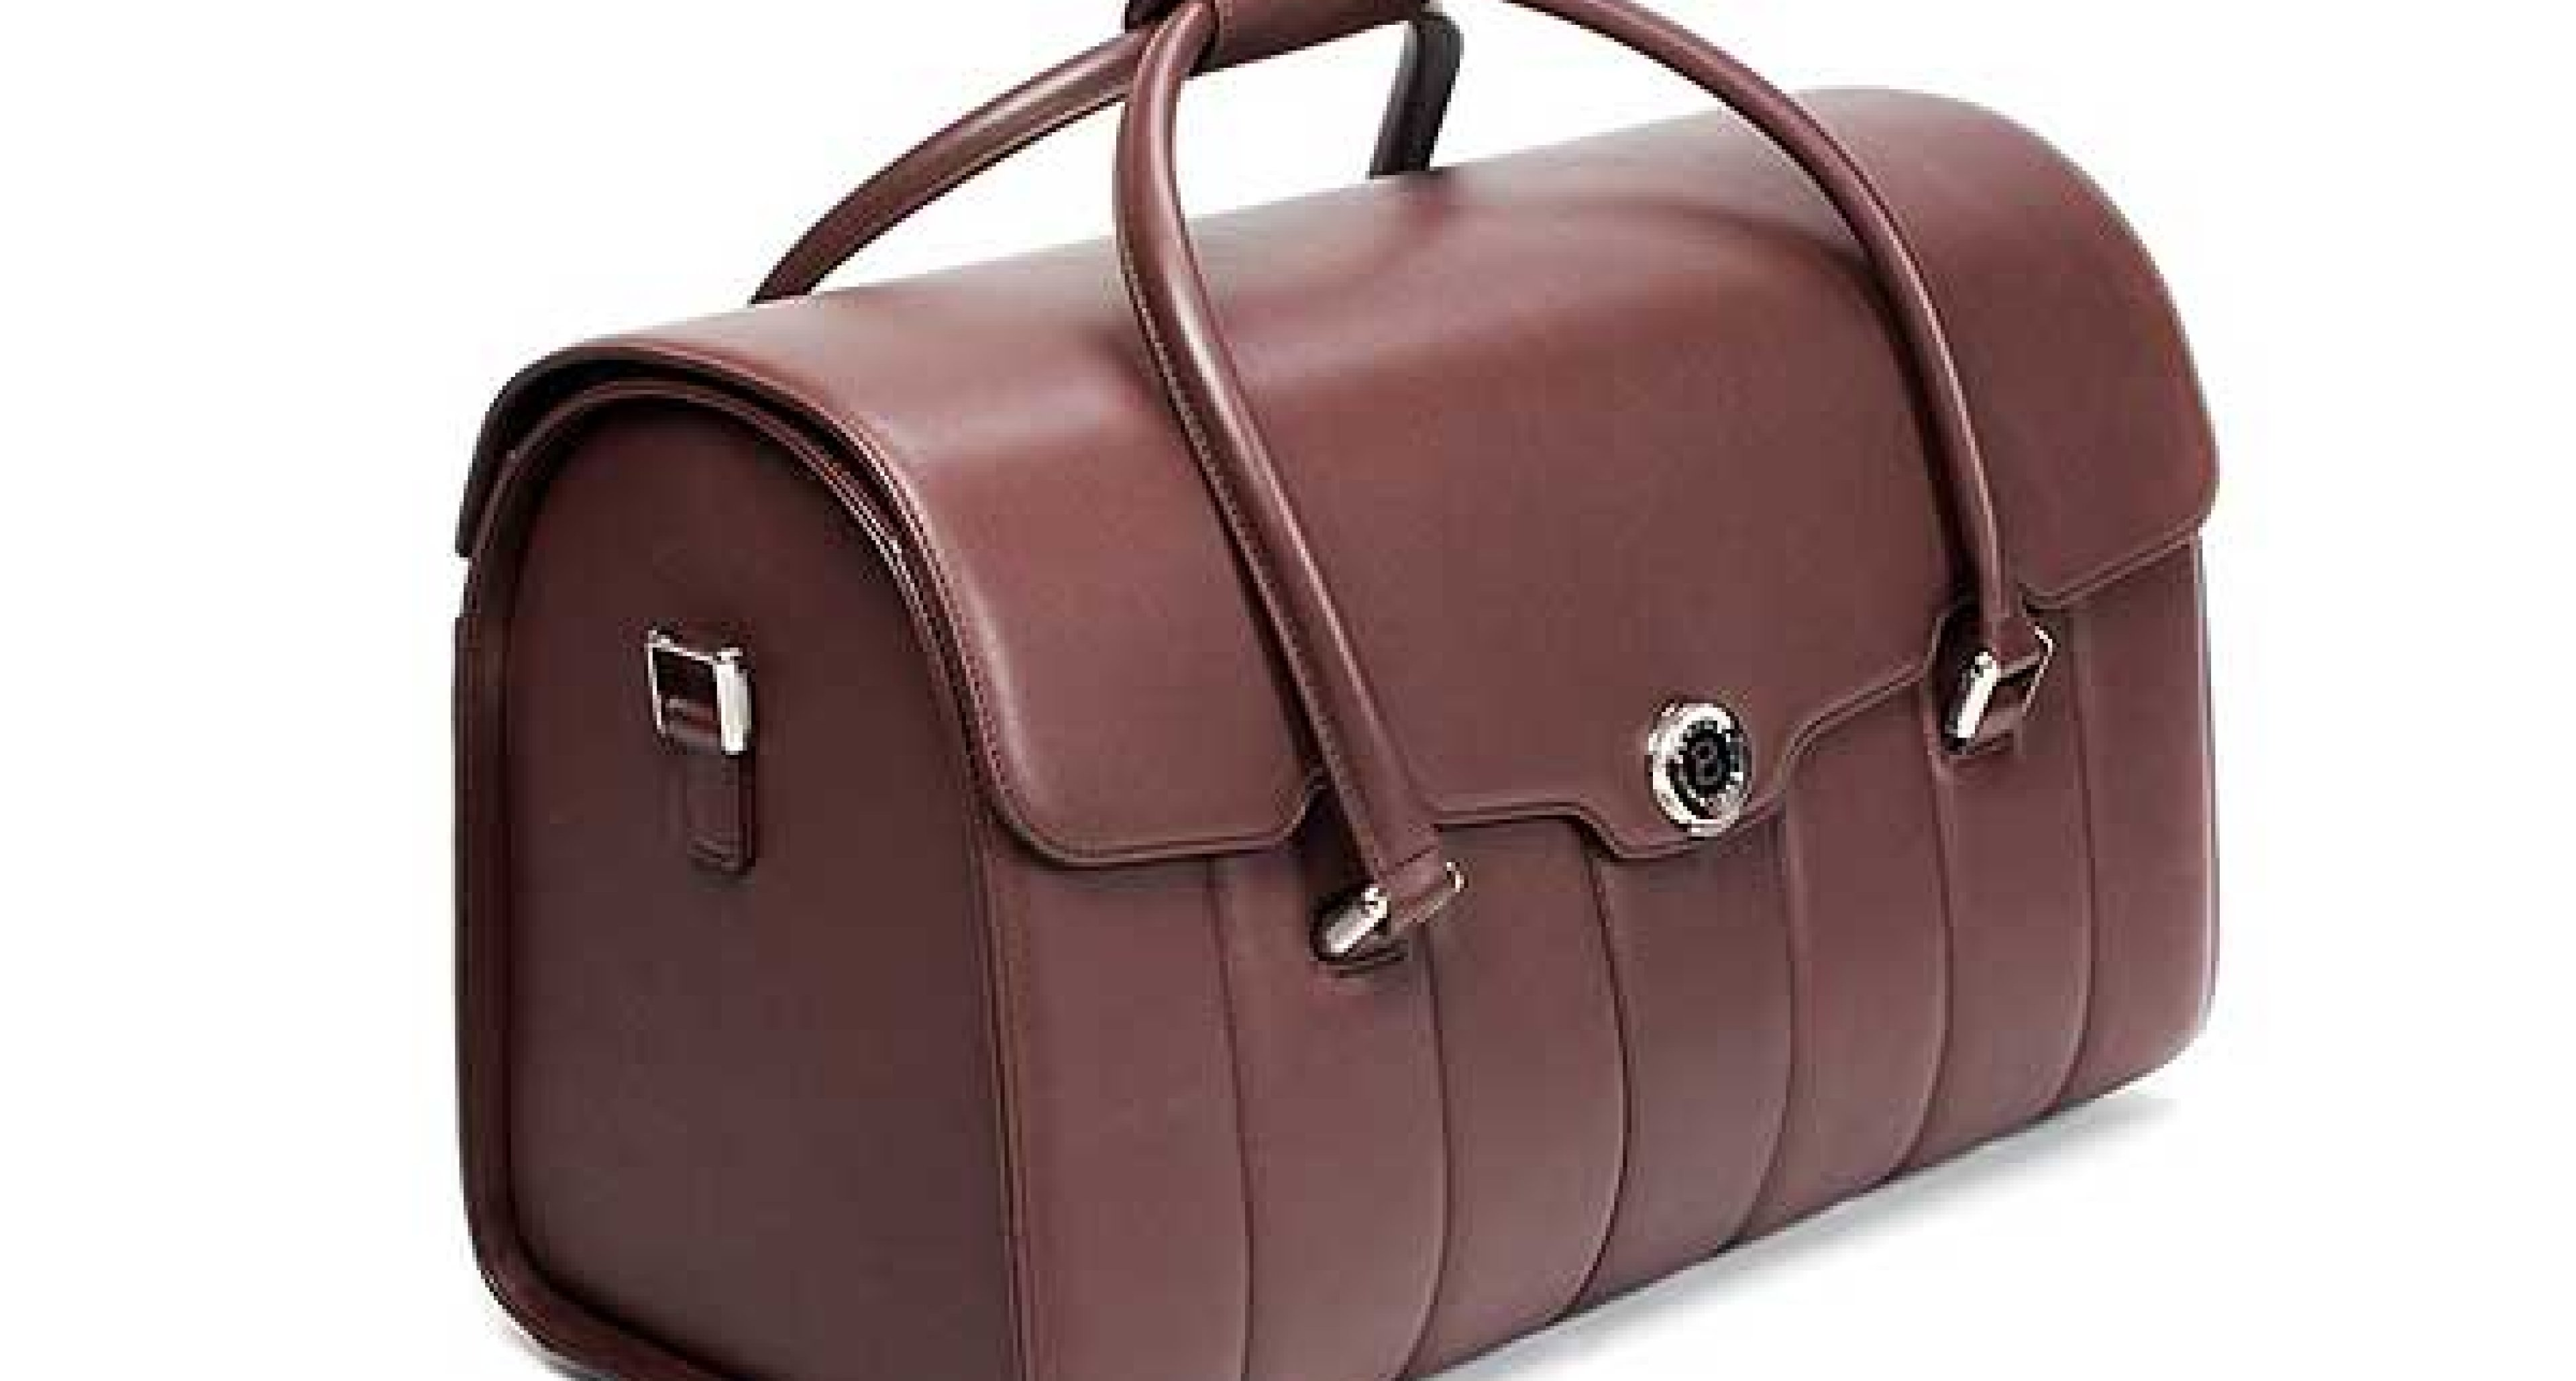 Alfred Dunhill Leather Luggage for Bentley